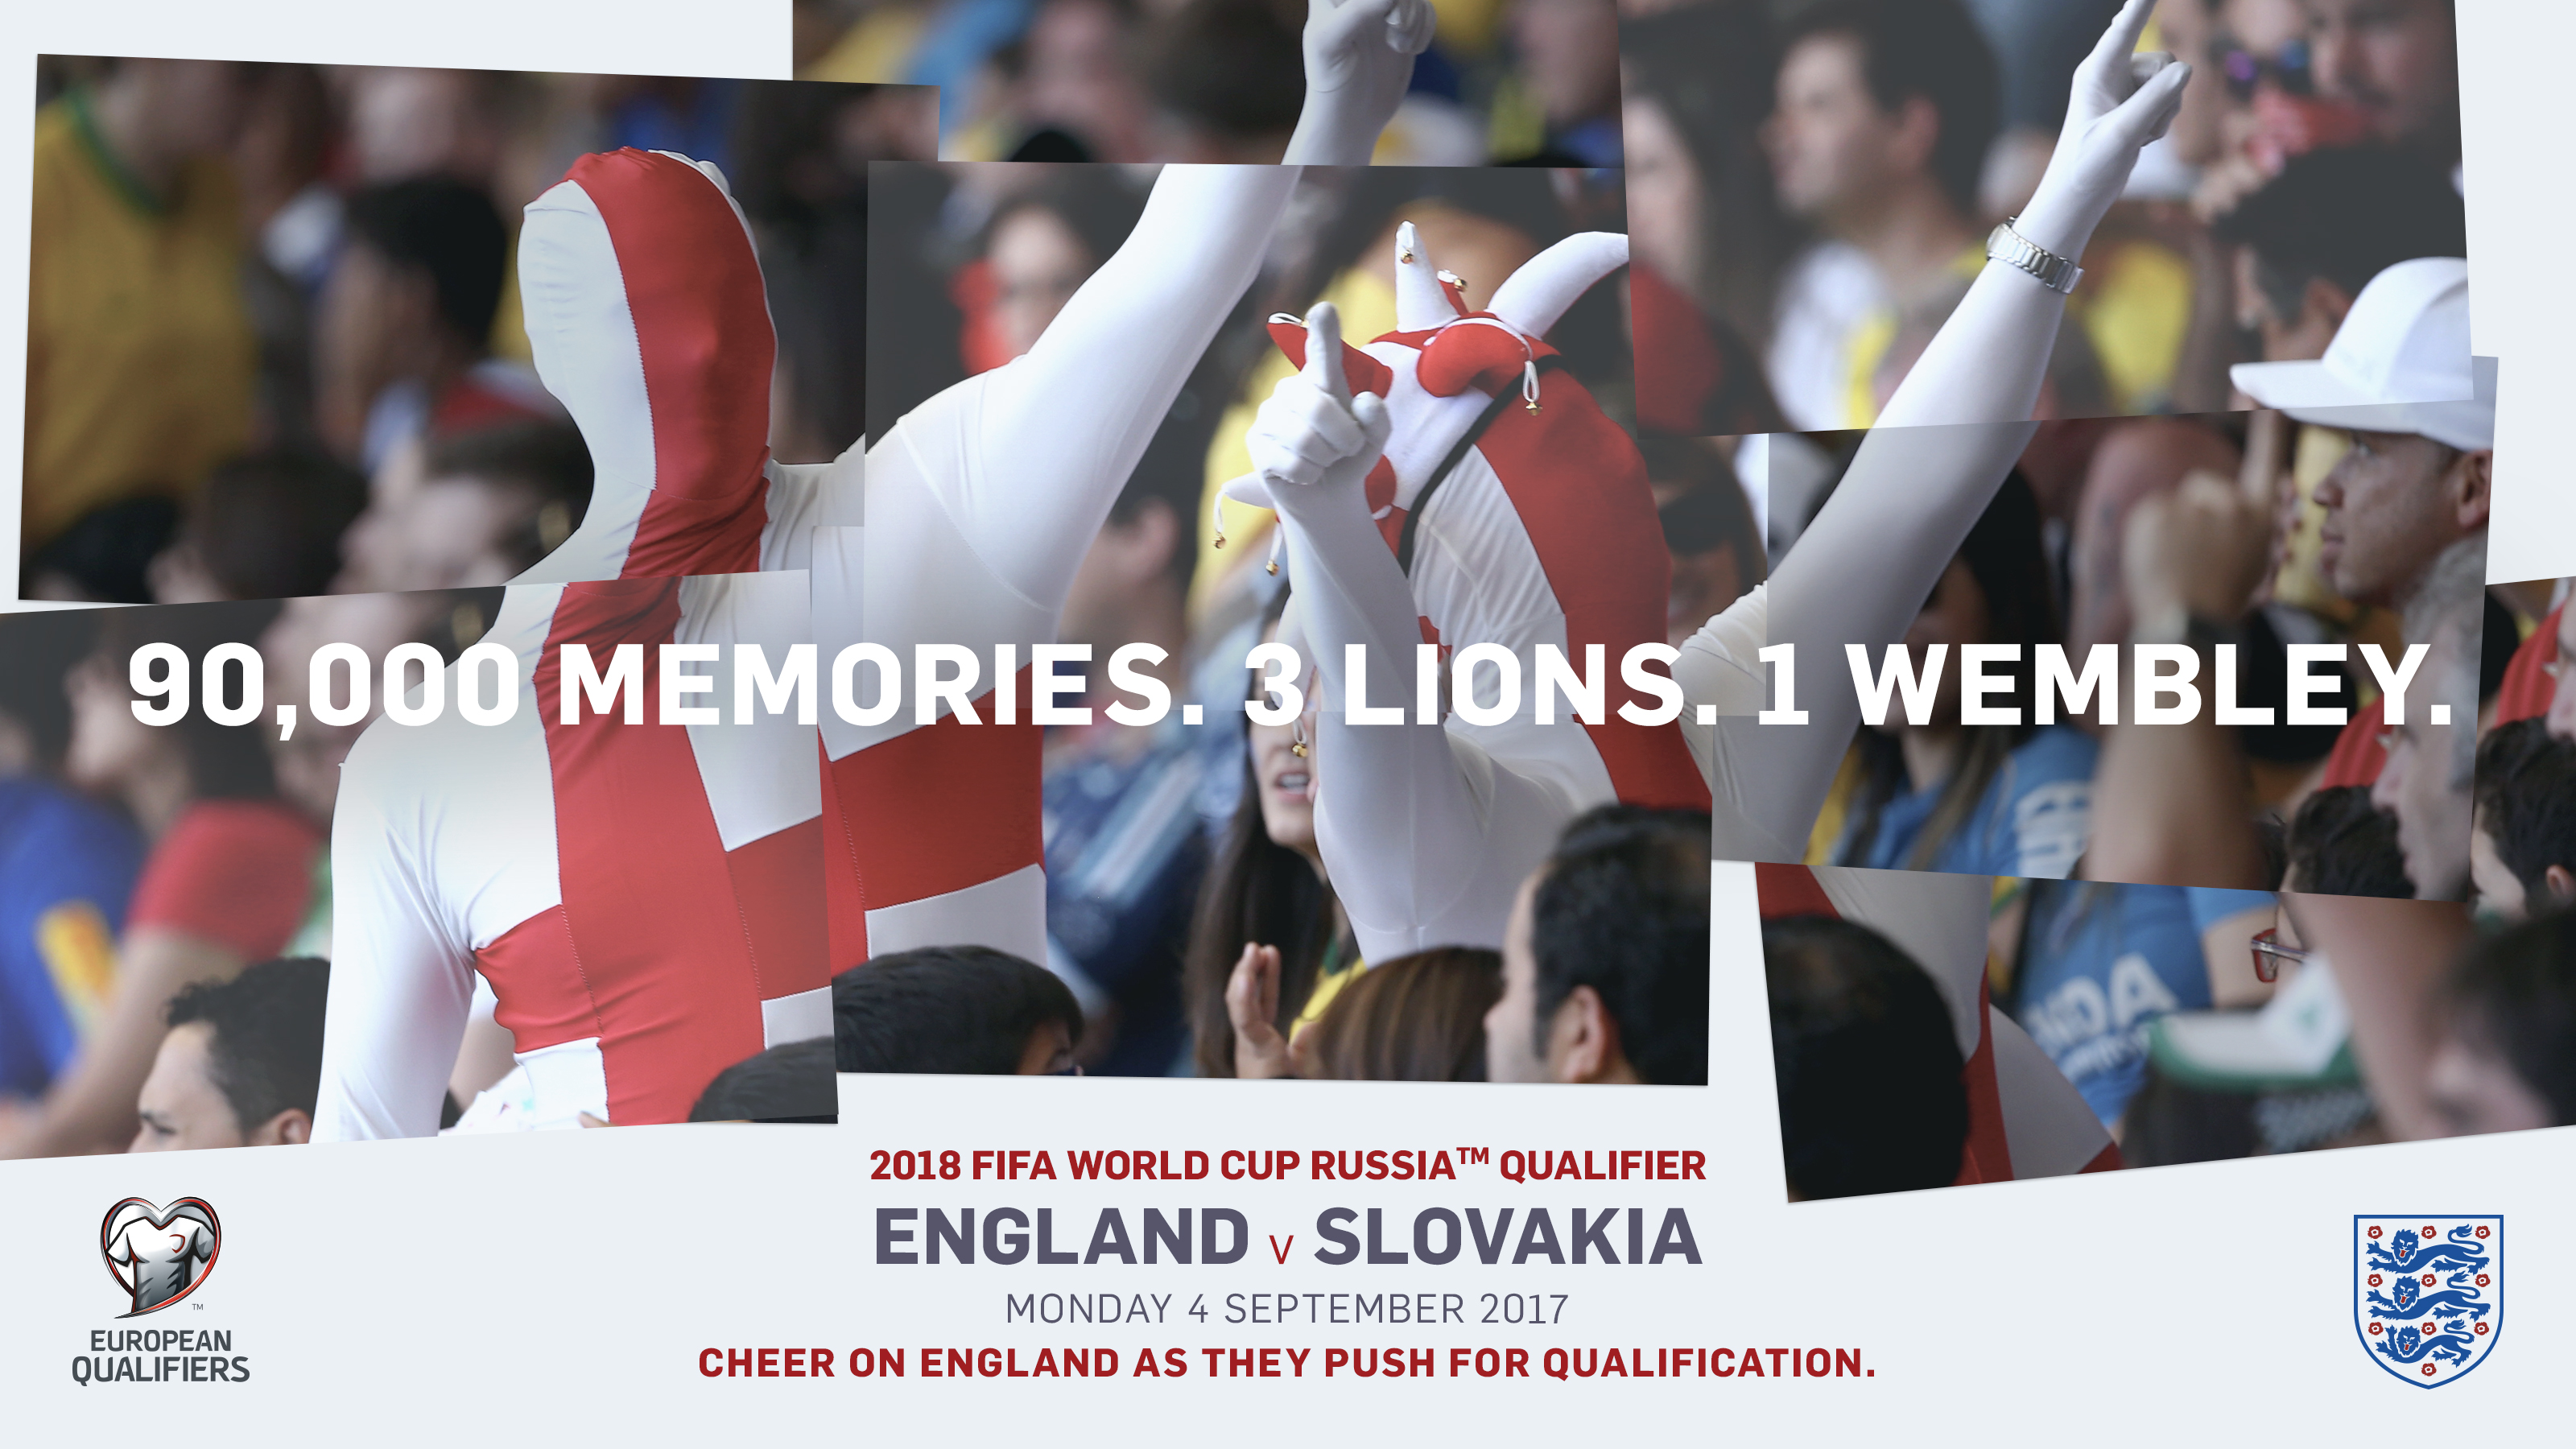 Tickets for England v Slovakia now on general sale